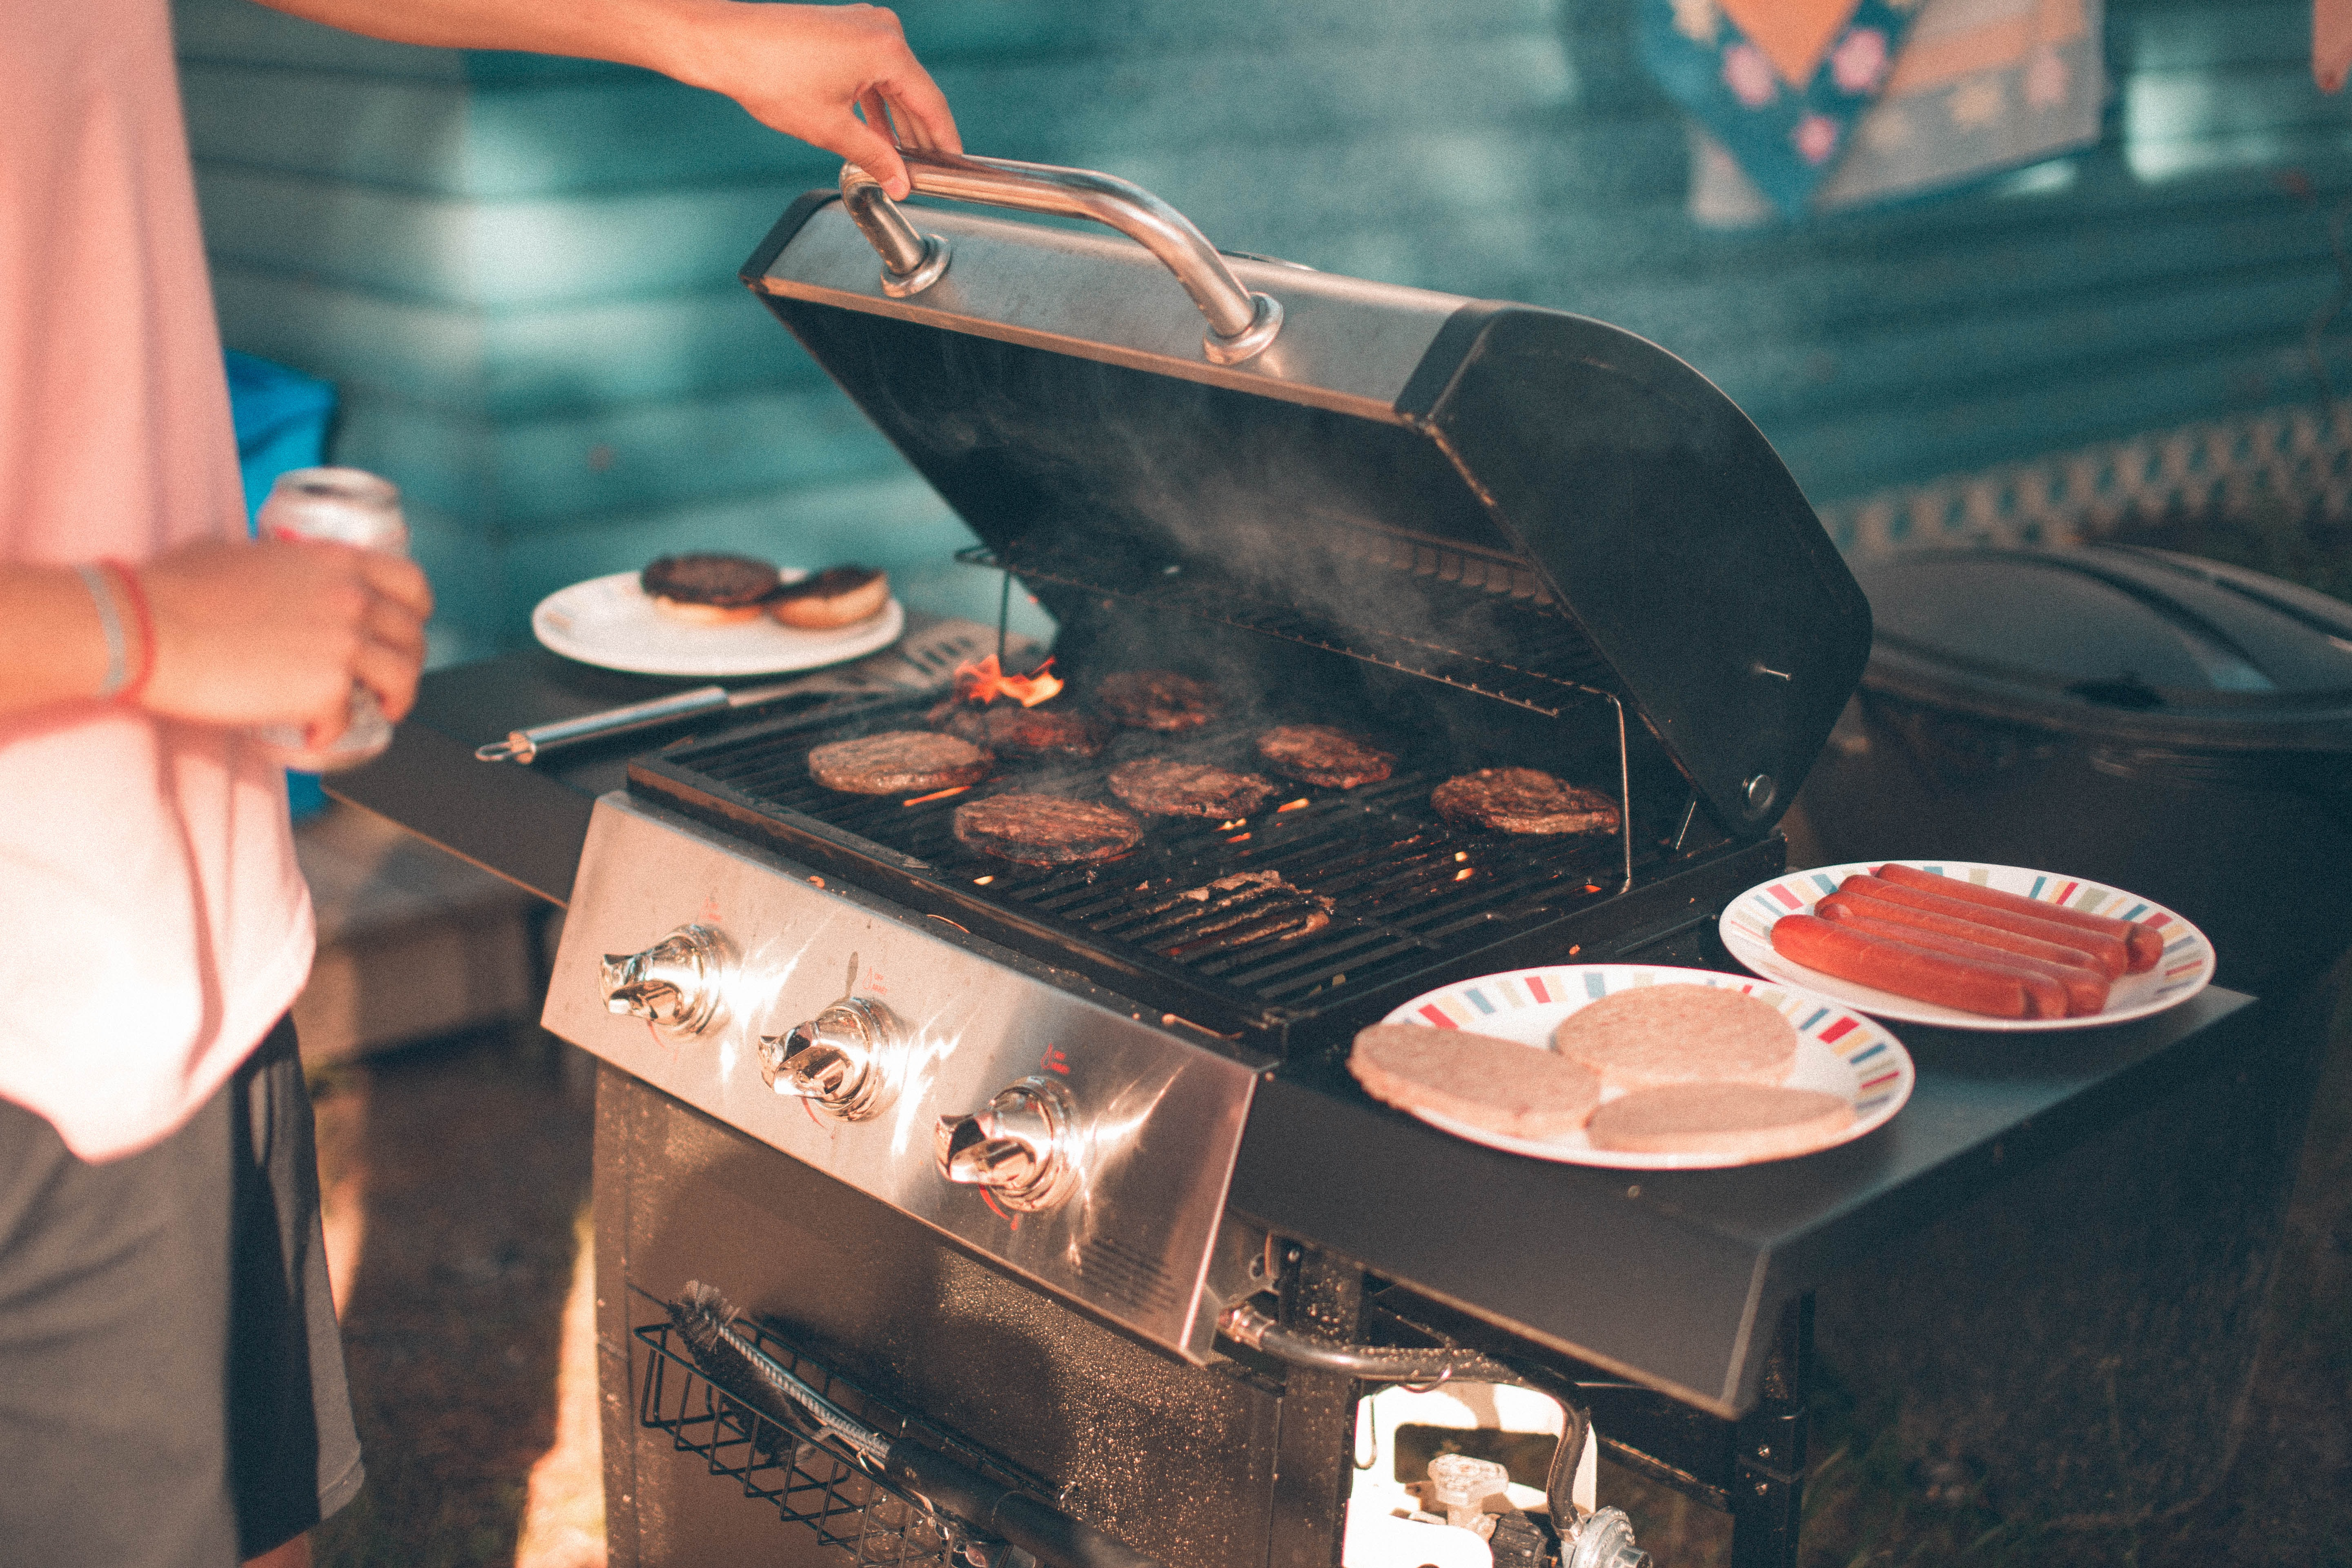 person cooking burger on gas grill